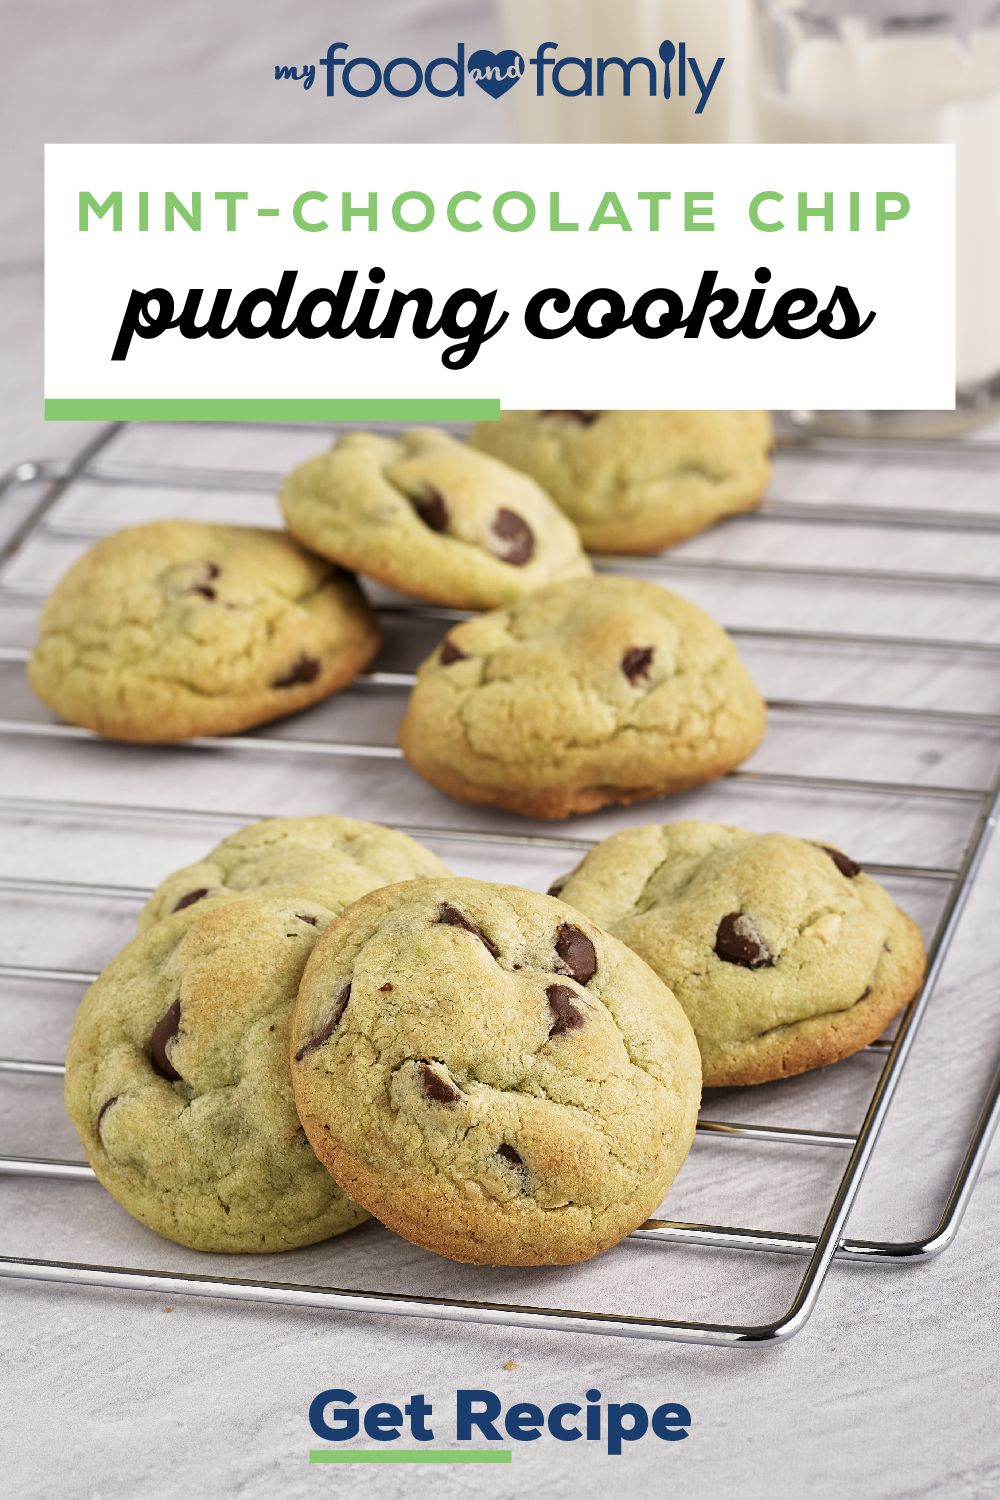 Mint-Chocolate Chip Pudding Cookies